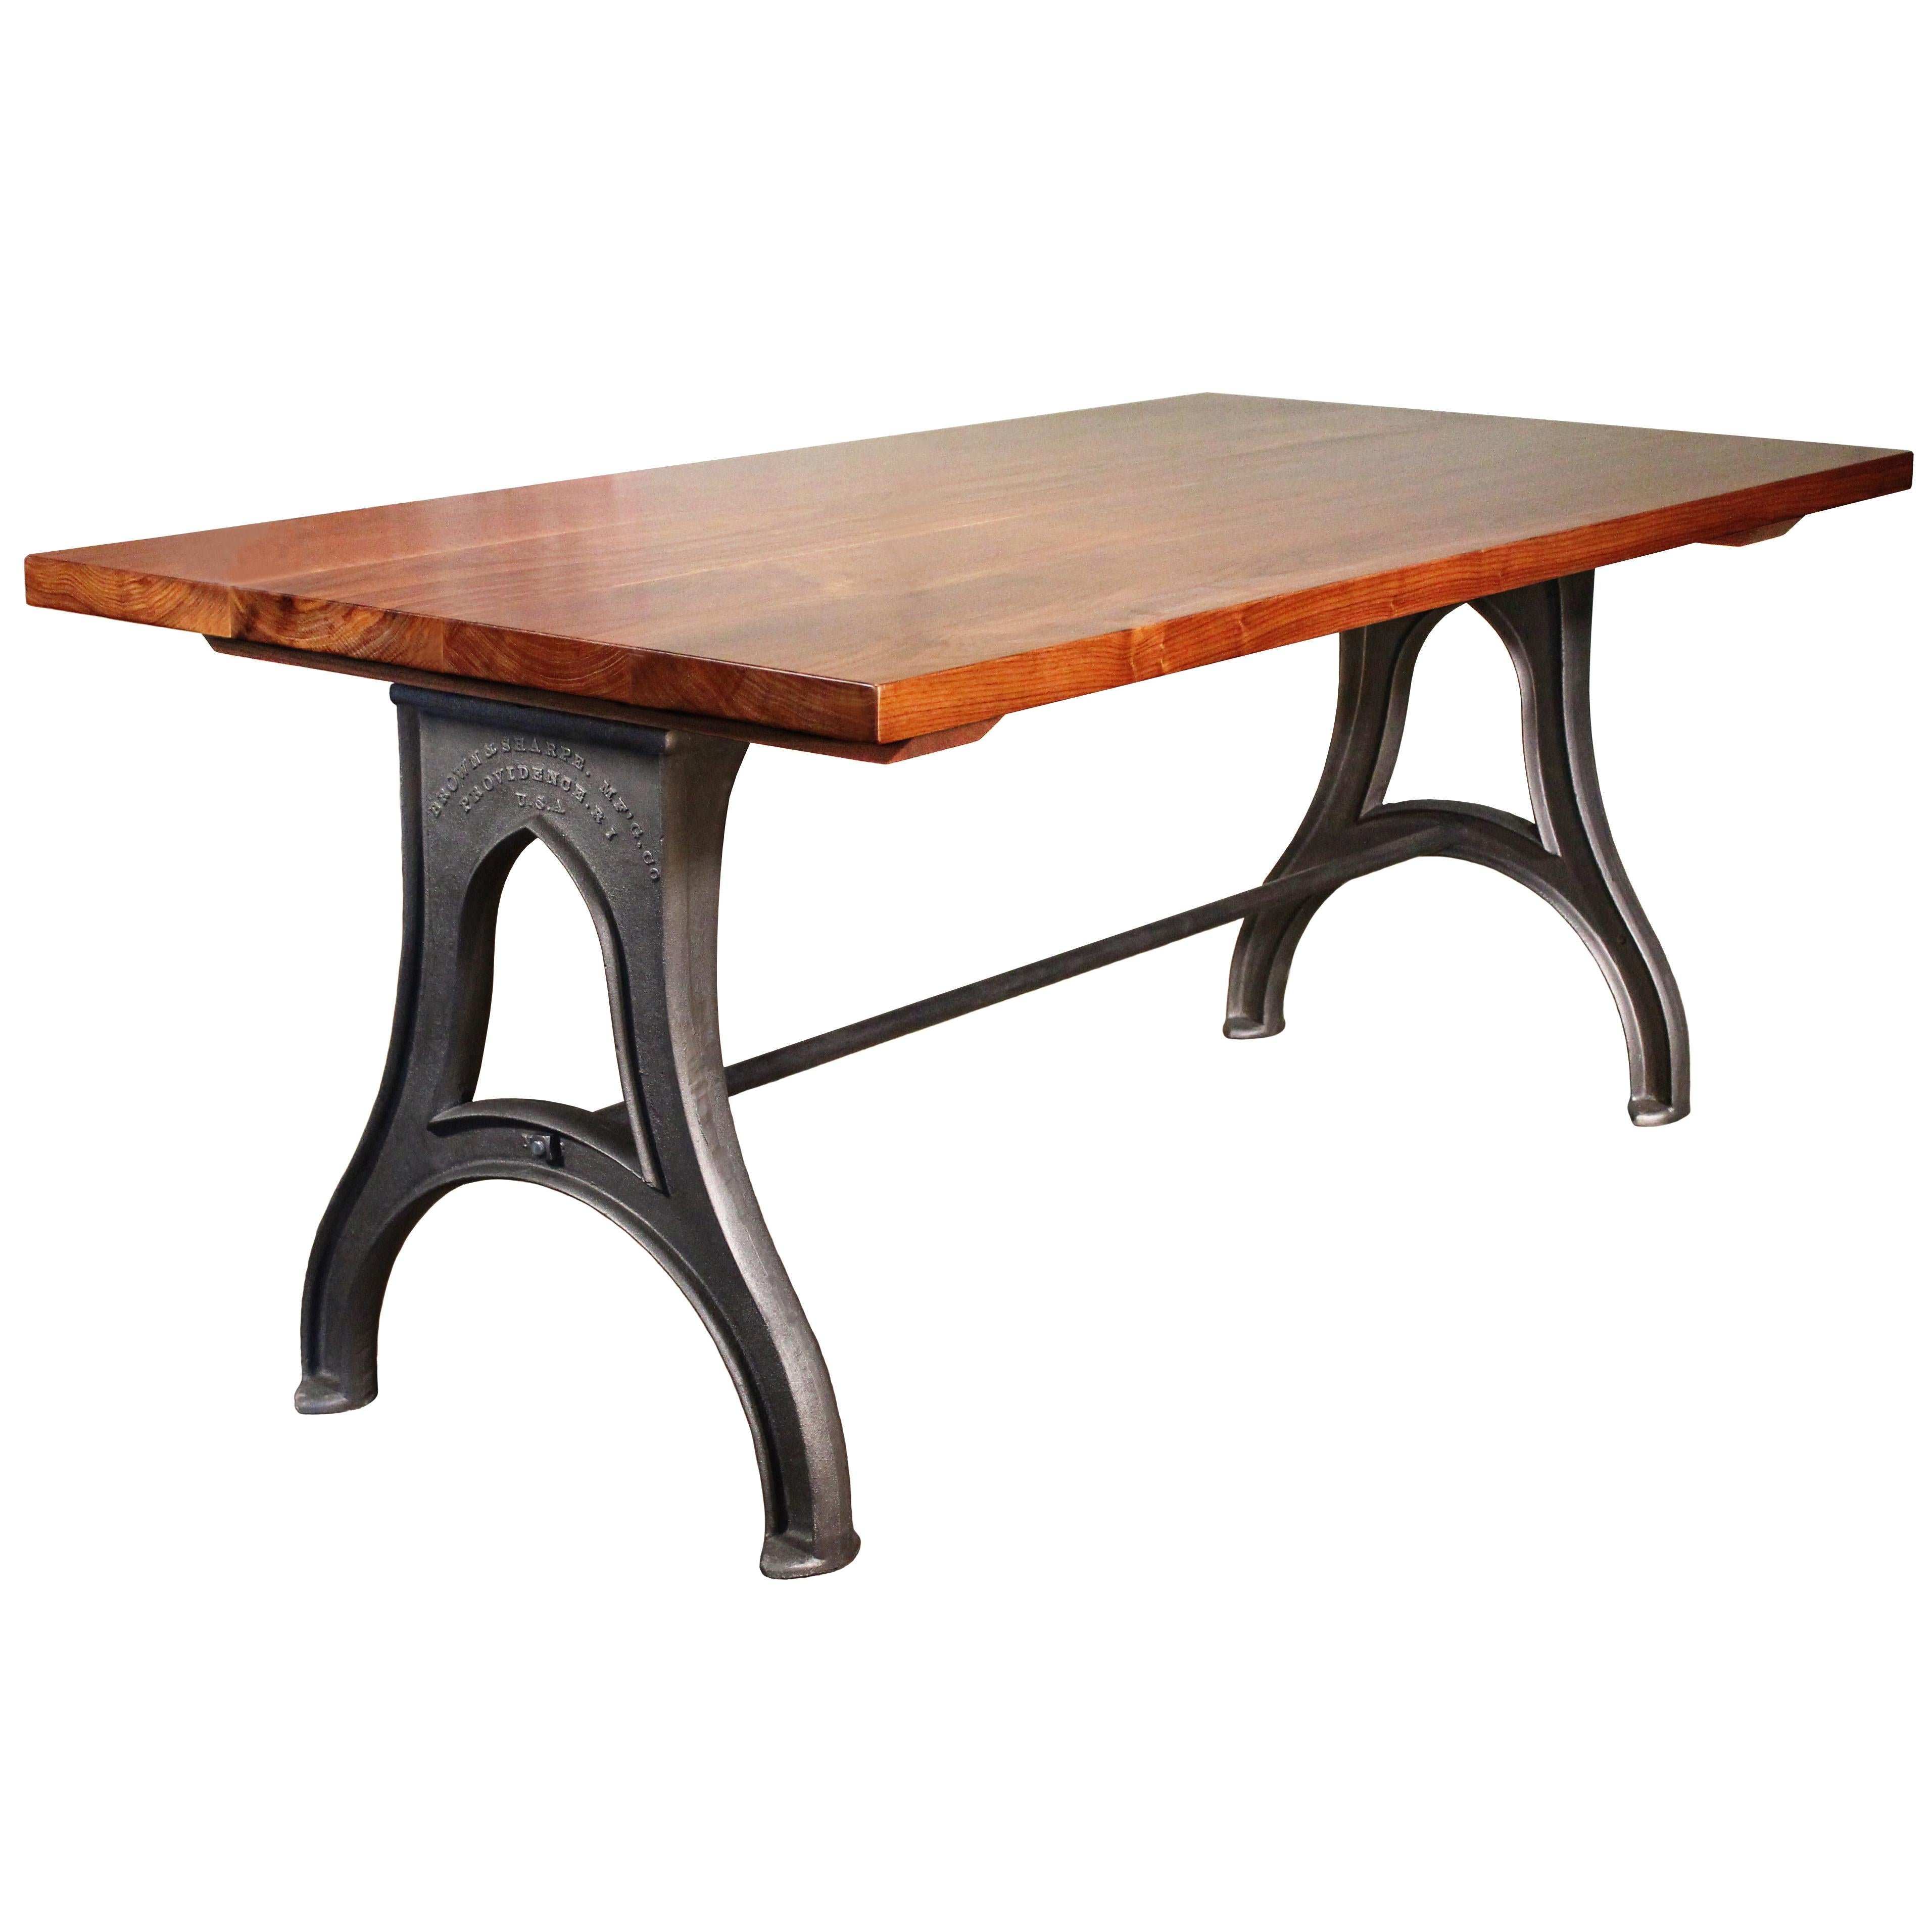 Picture of: Bespoke Walnut Desk With Cast Iron Legs Industrial Modern Work Custom Table For Sale At 1stdibs